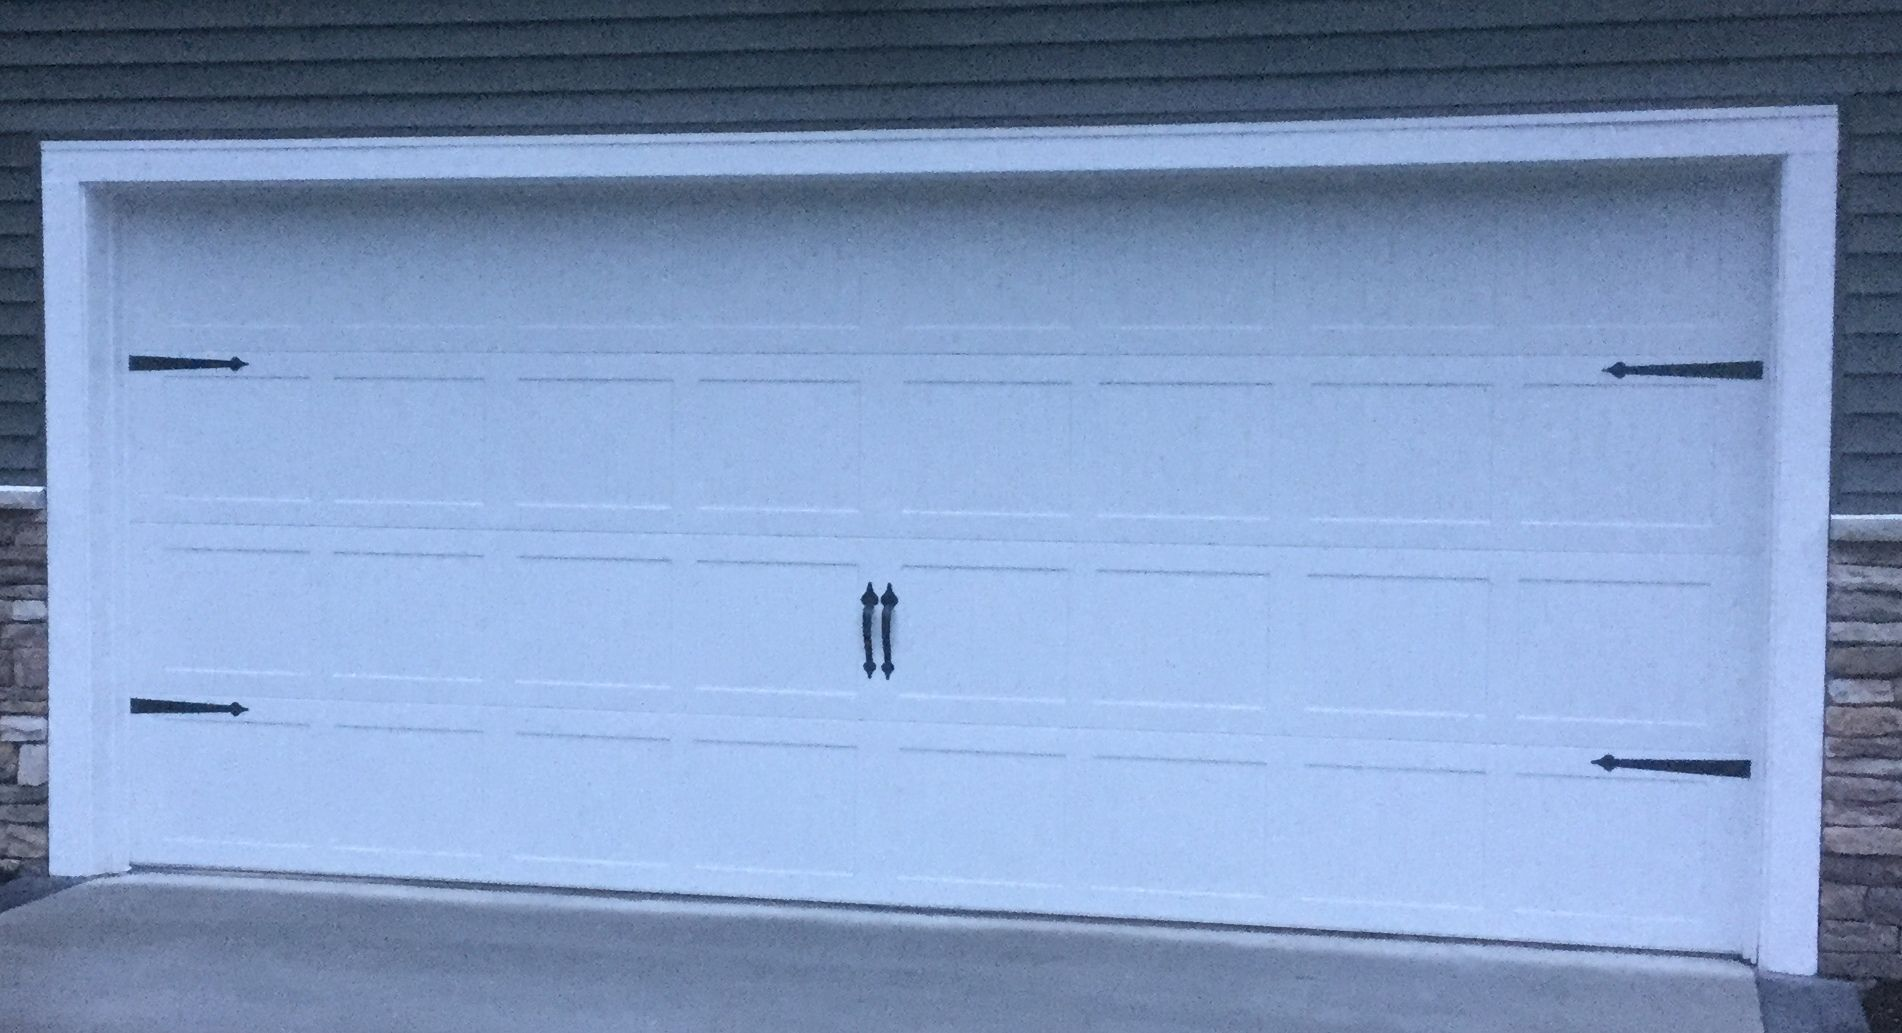 16x7 Model 5250 Stamped Steel Carriage Style Garage Door With Spade Decorative Hardware